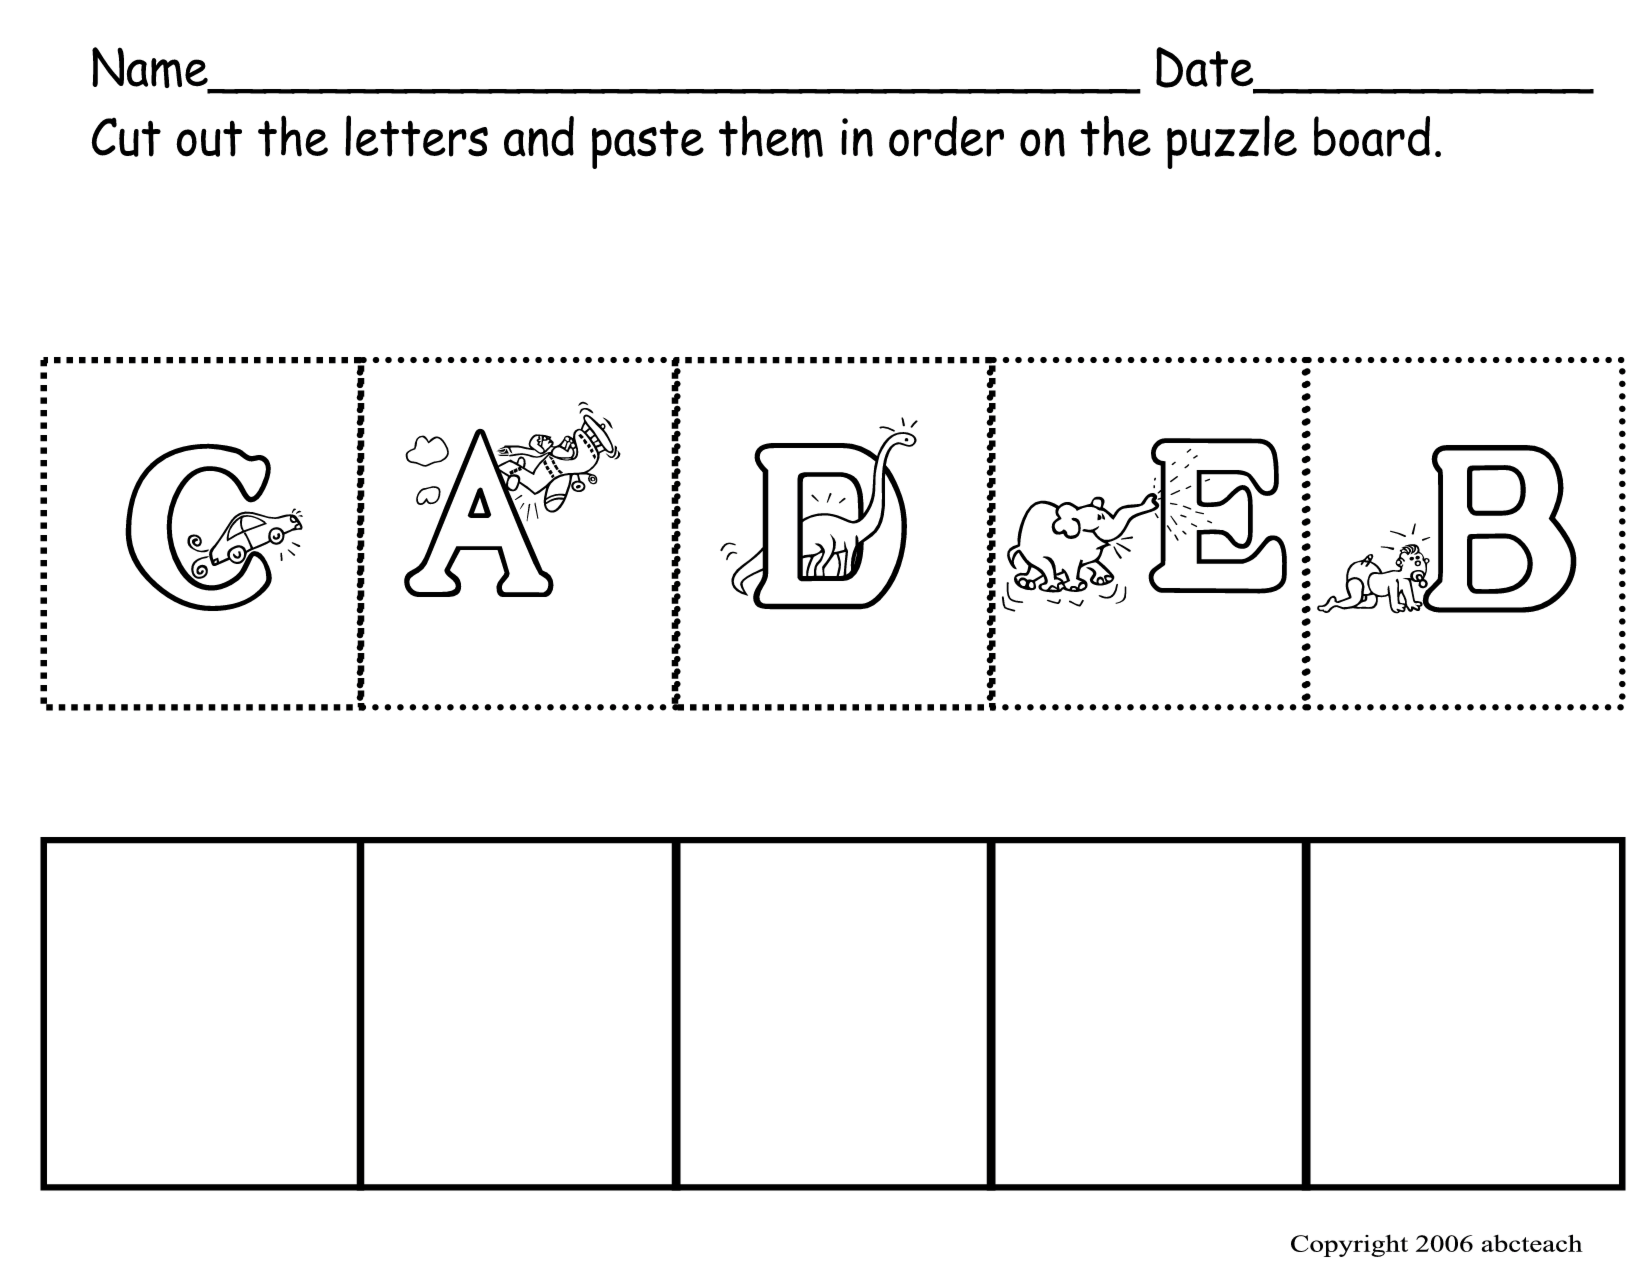 Abc Preschool Worksheets - PDF - PDF   Abc worksheets [ 1275 x 1650 Pixel ]